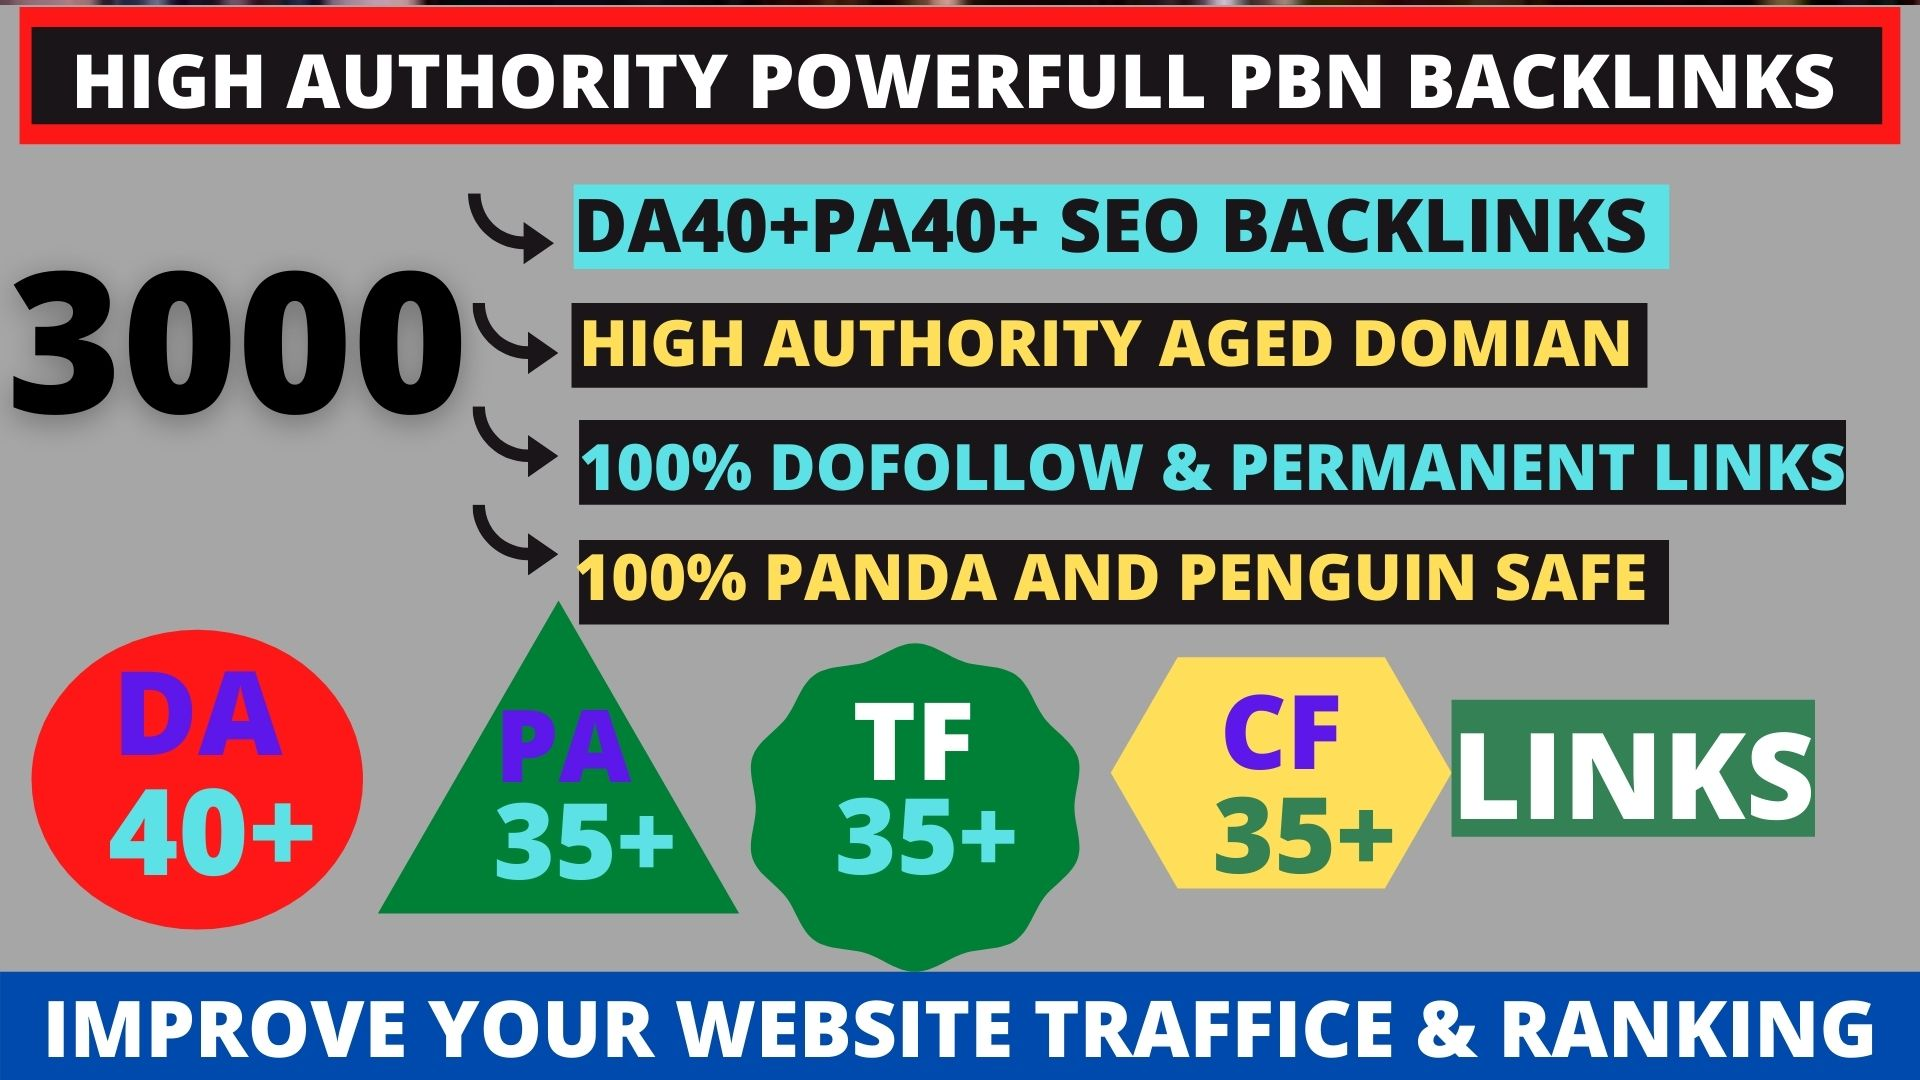 Get powerfull 3000+ pbn backlink with high DA/PA/TF/CF on your homepage with unique website